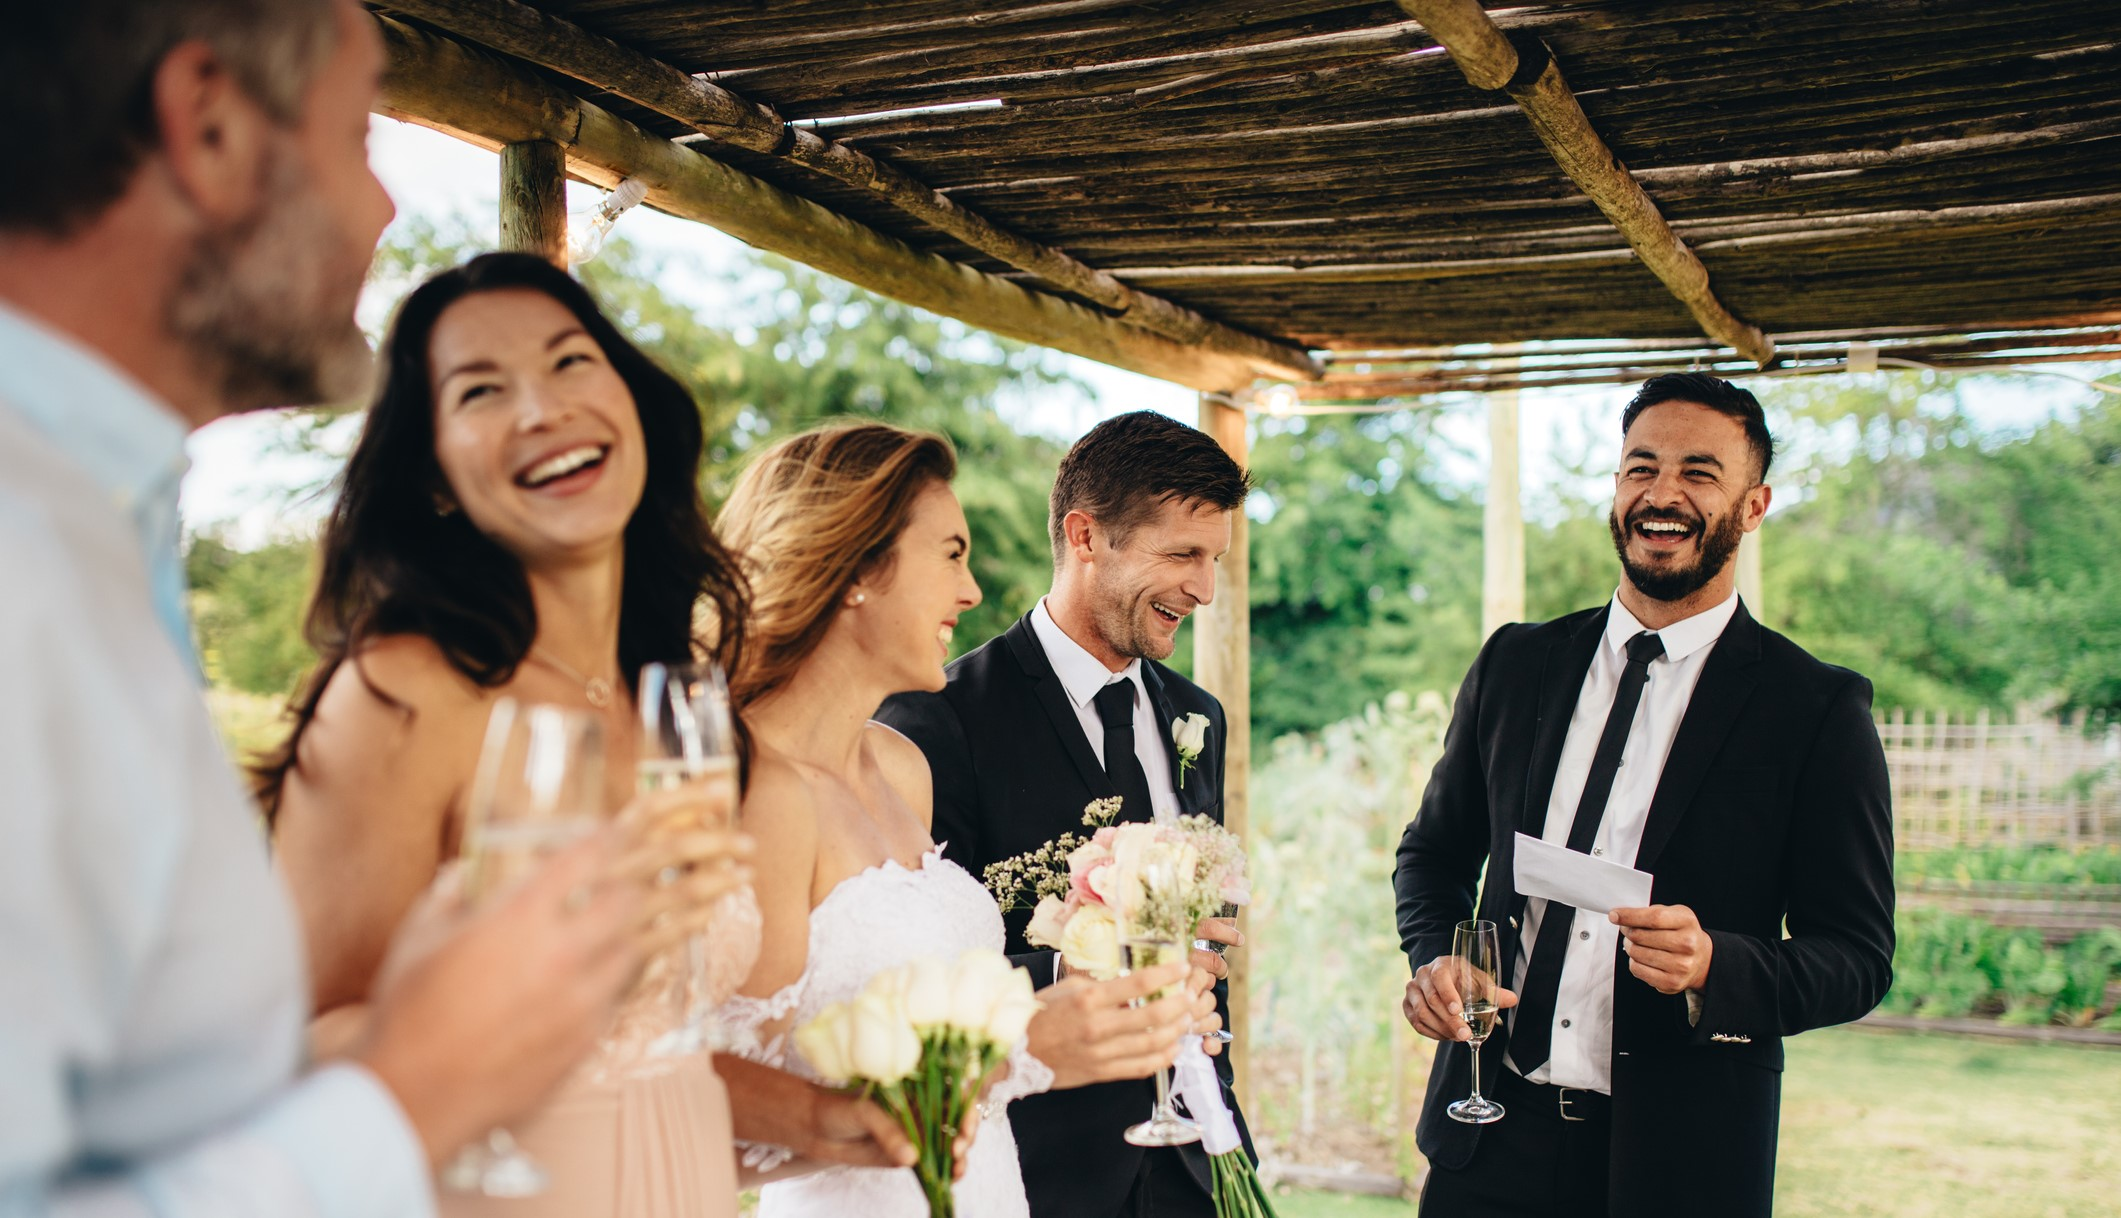 How to Advertise for Wedding Services and Other Live Events (Right Now)